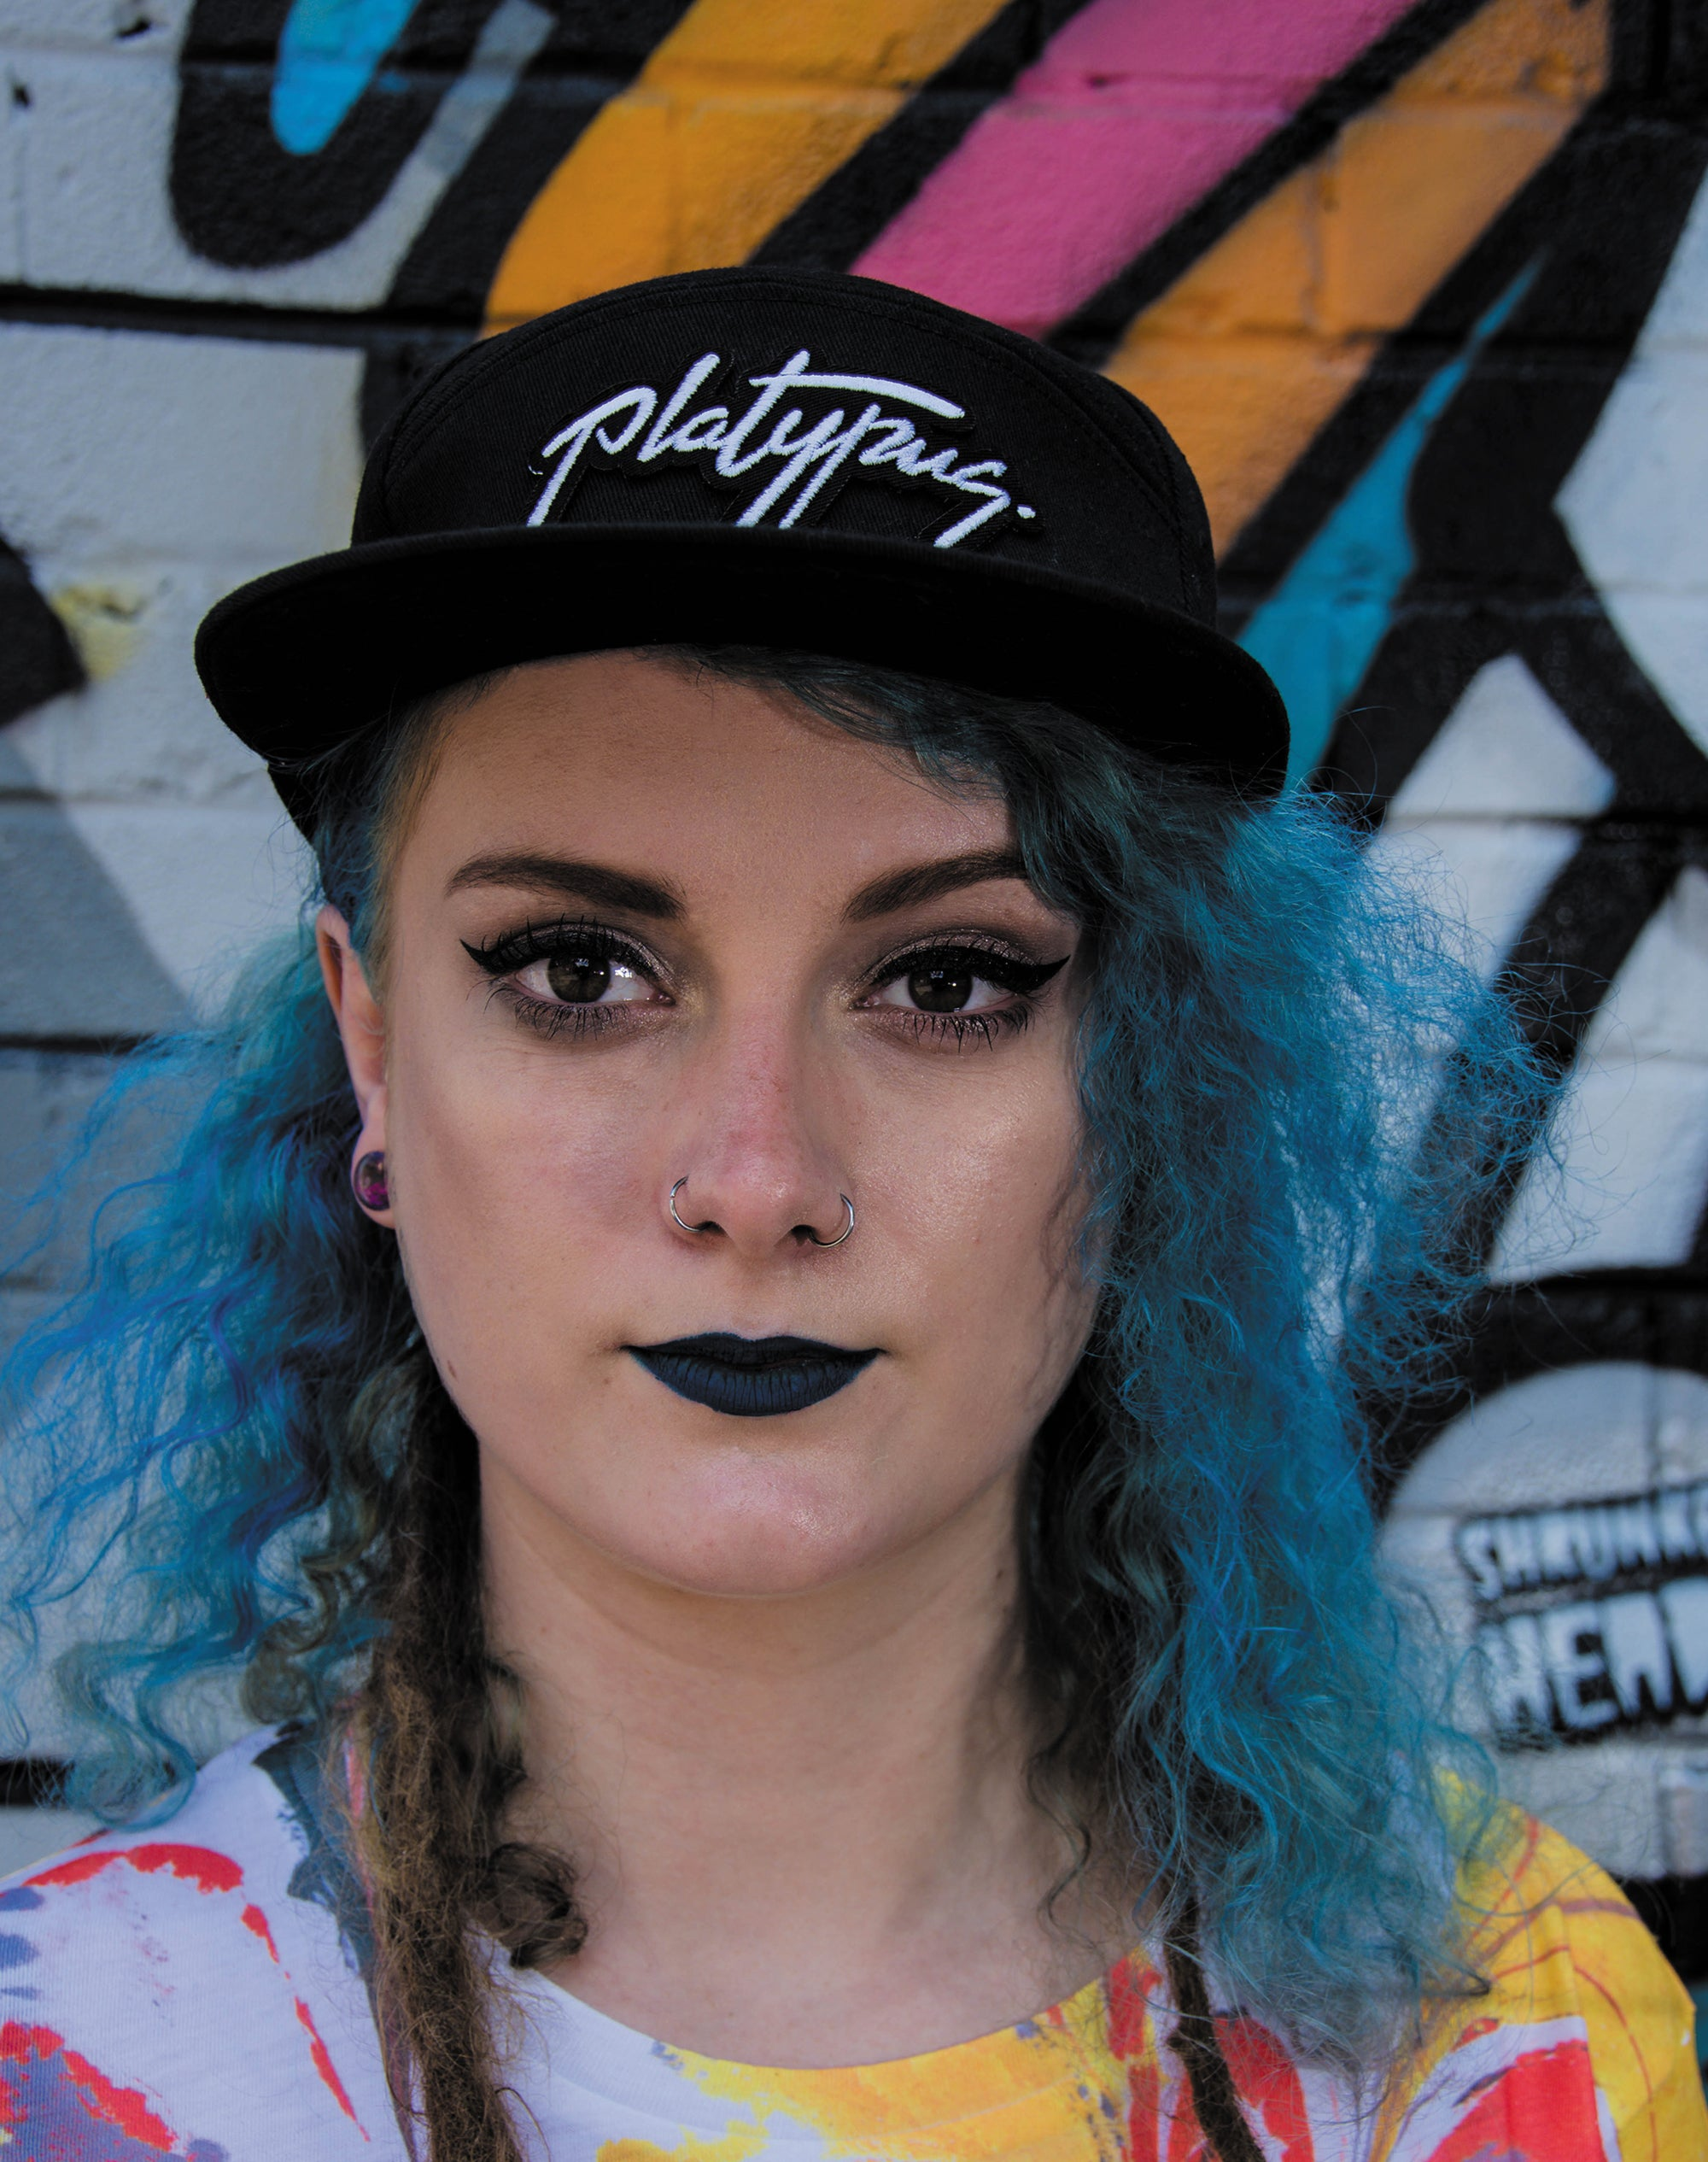 Platypus UK Streetwear 5-Panel Black Signature Snapback hat